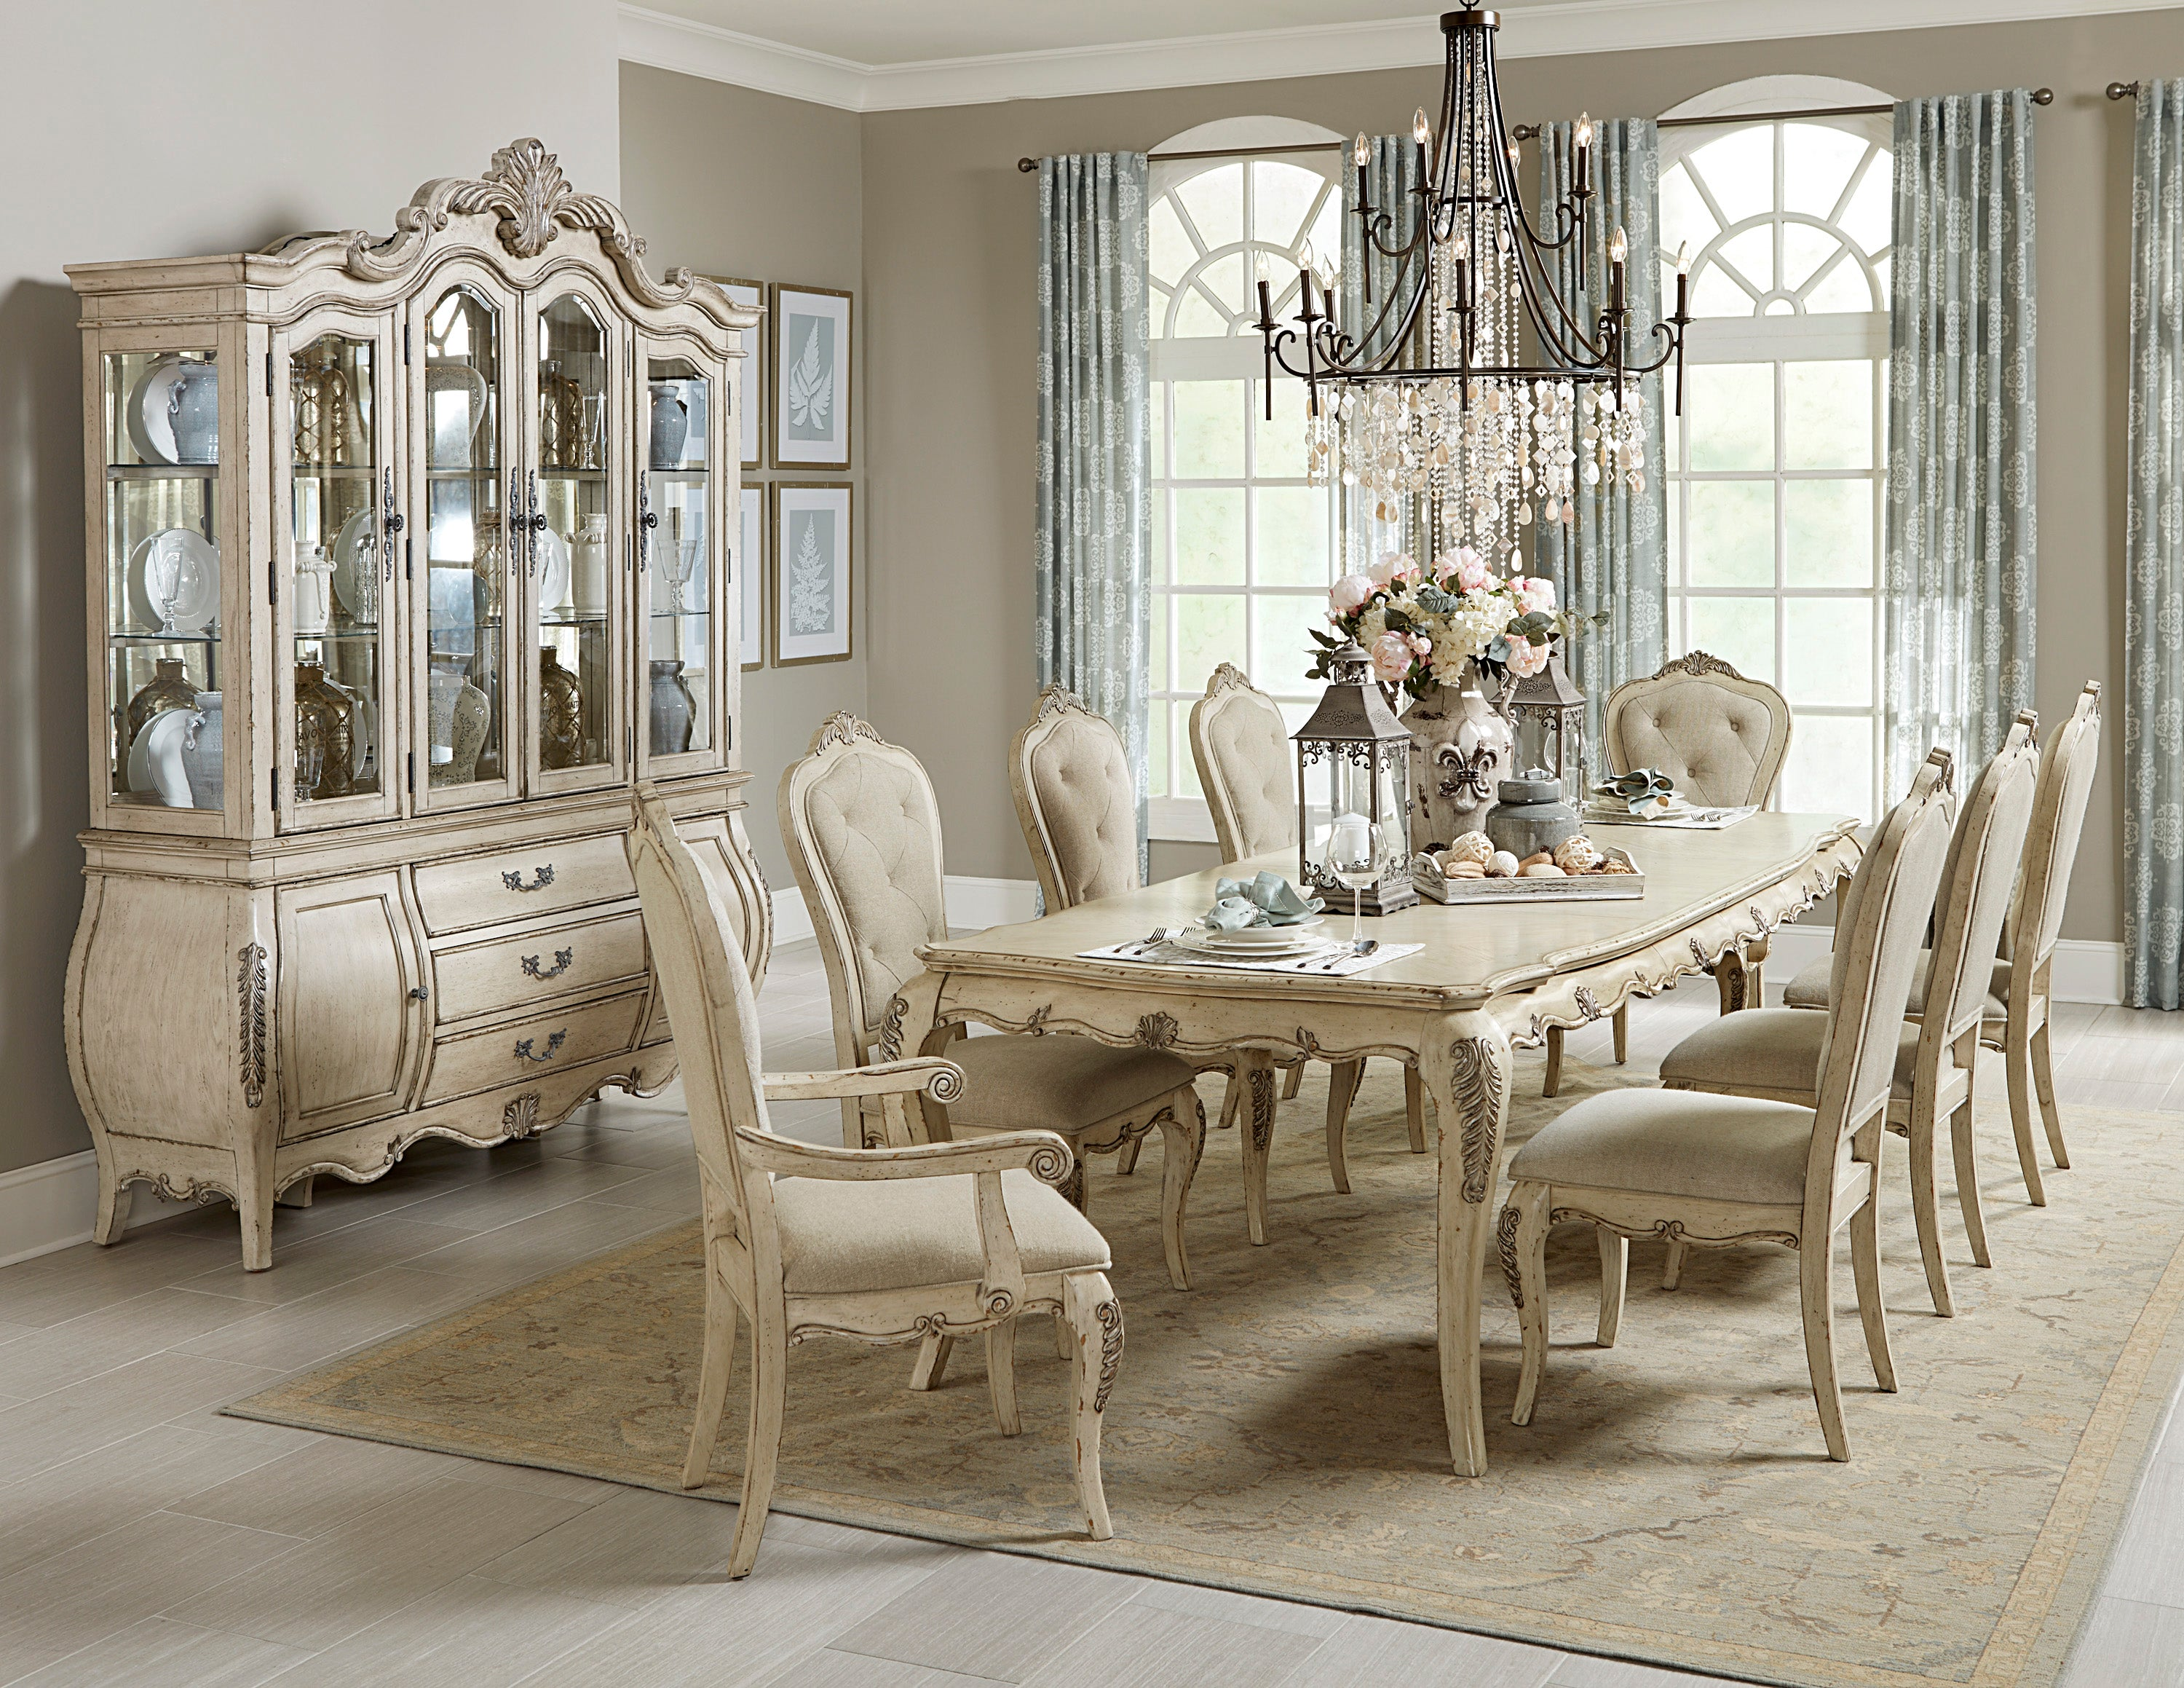 Special Elsmere Antique Gray Dining Room Set From Homelegance Luna Furniture